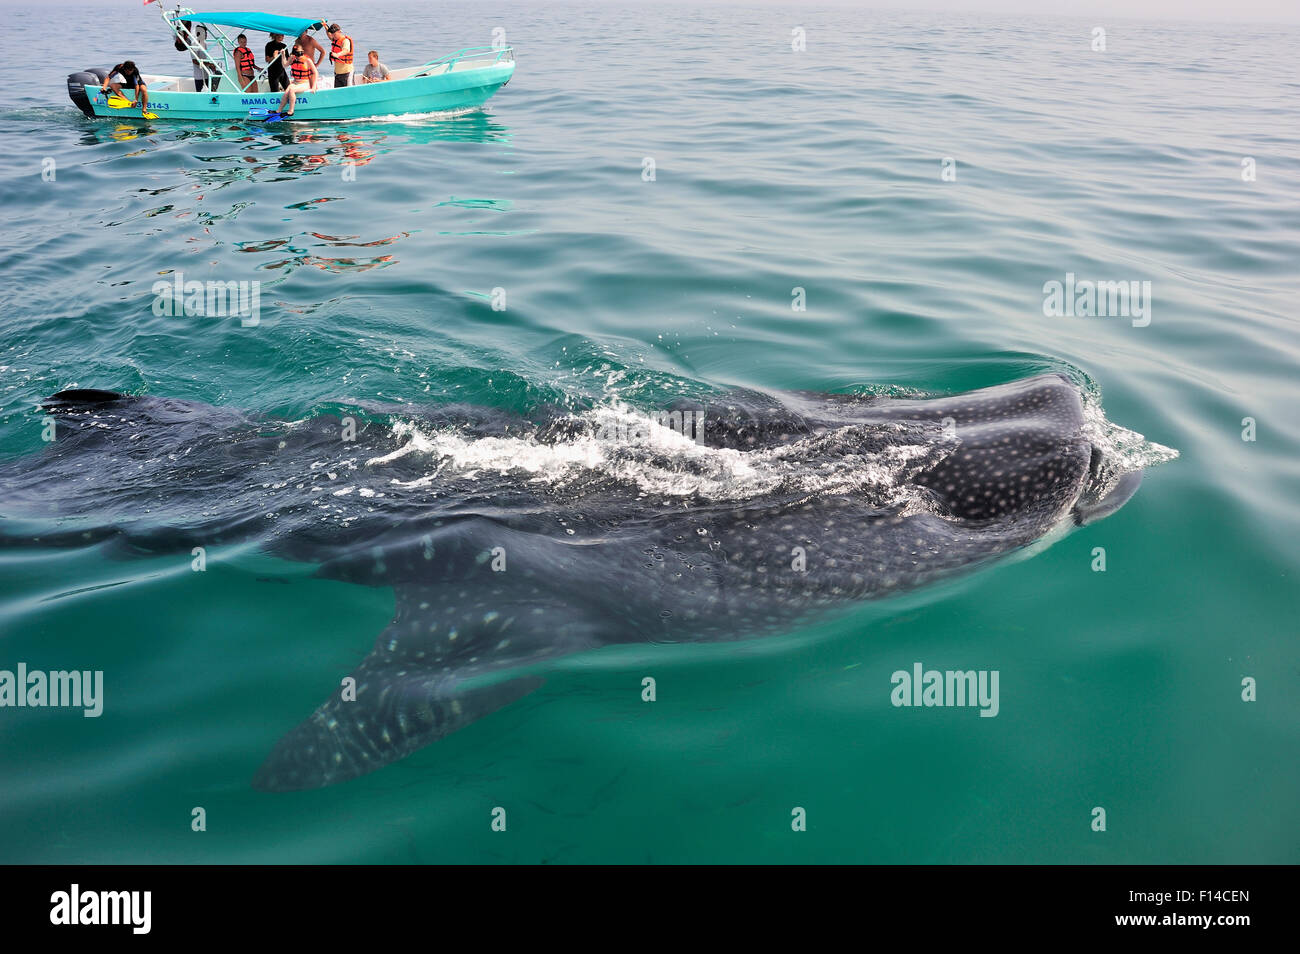 Whale shark (Rhincodon typus) mouth open feeding on plankton at the surface with tourists watching from boat, Yucatan - Stock Image